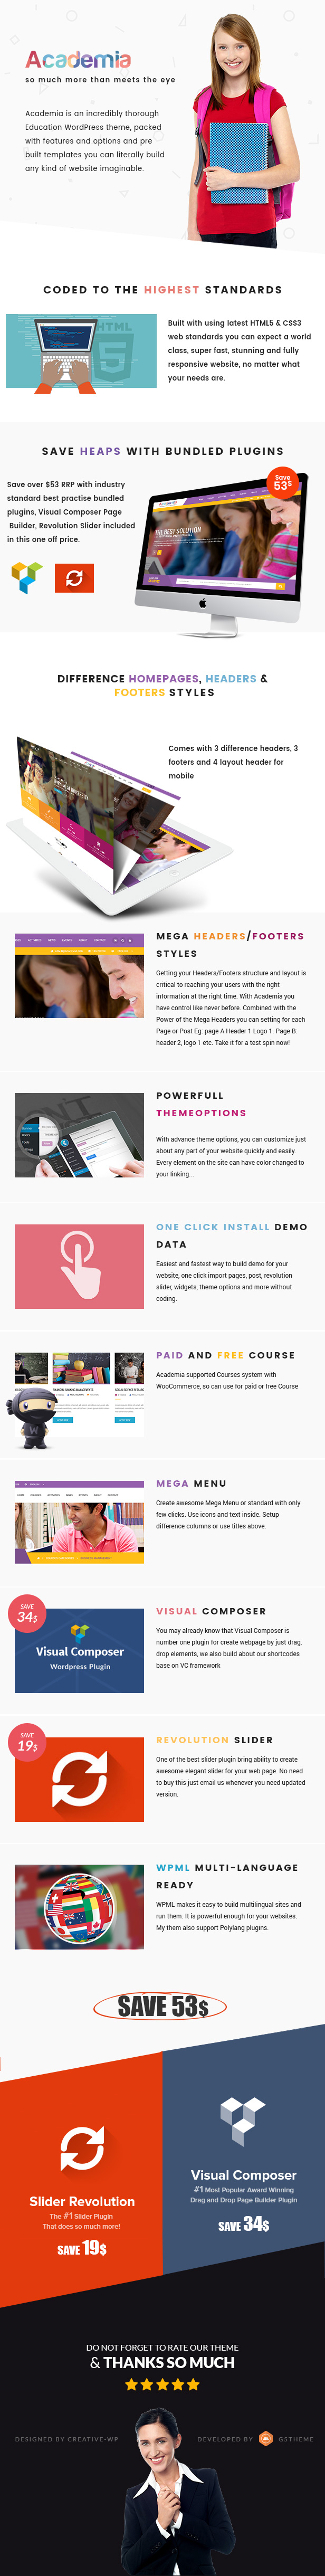 Academia - Education Center WordPress Theme - 13